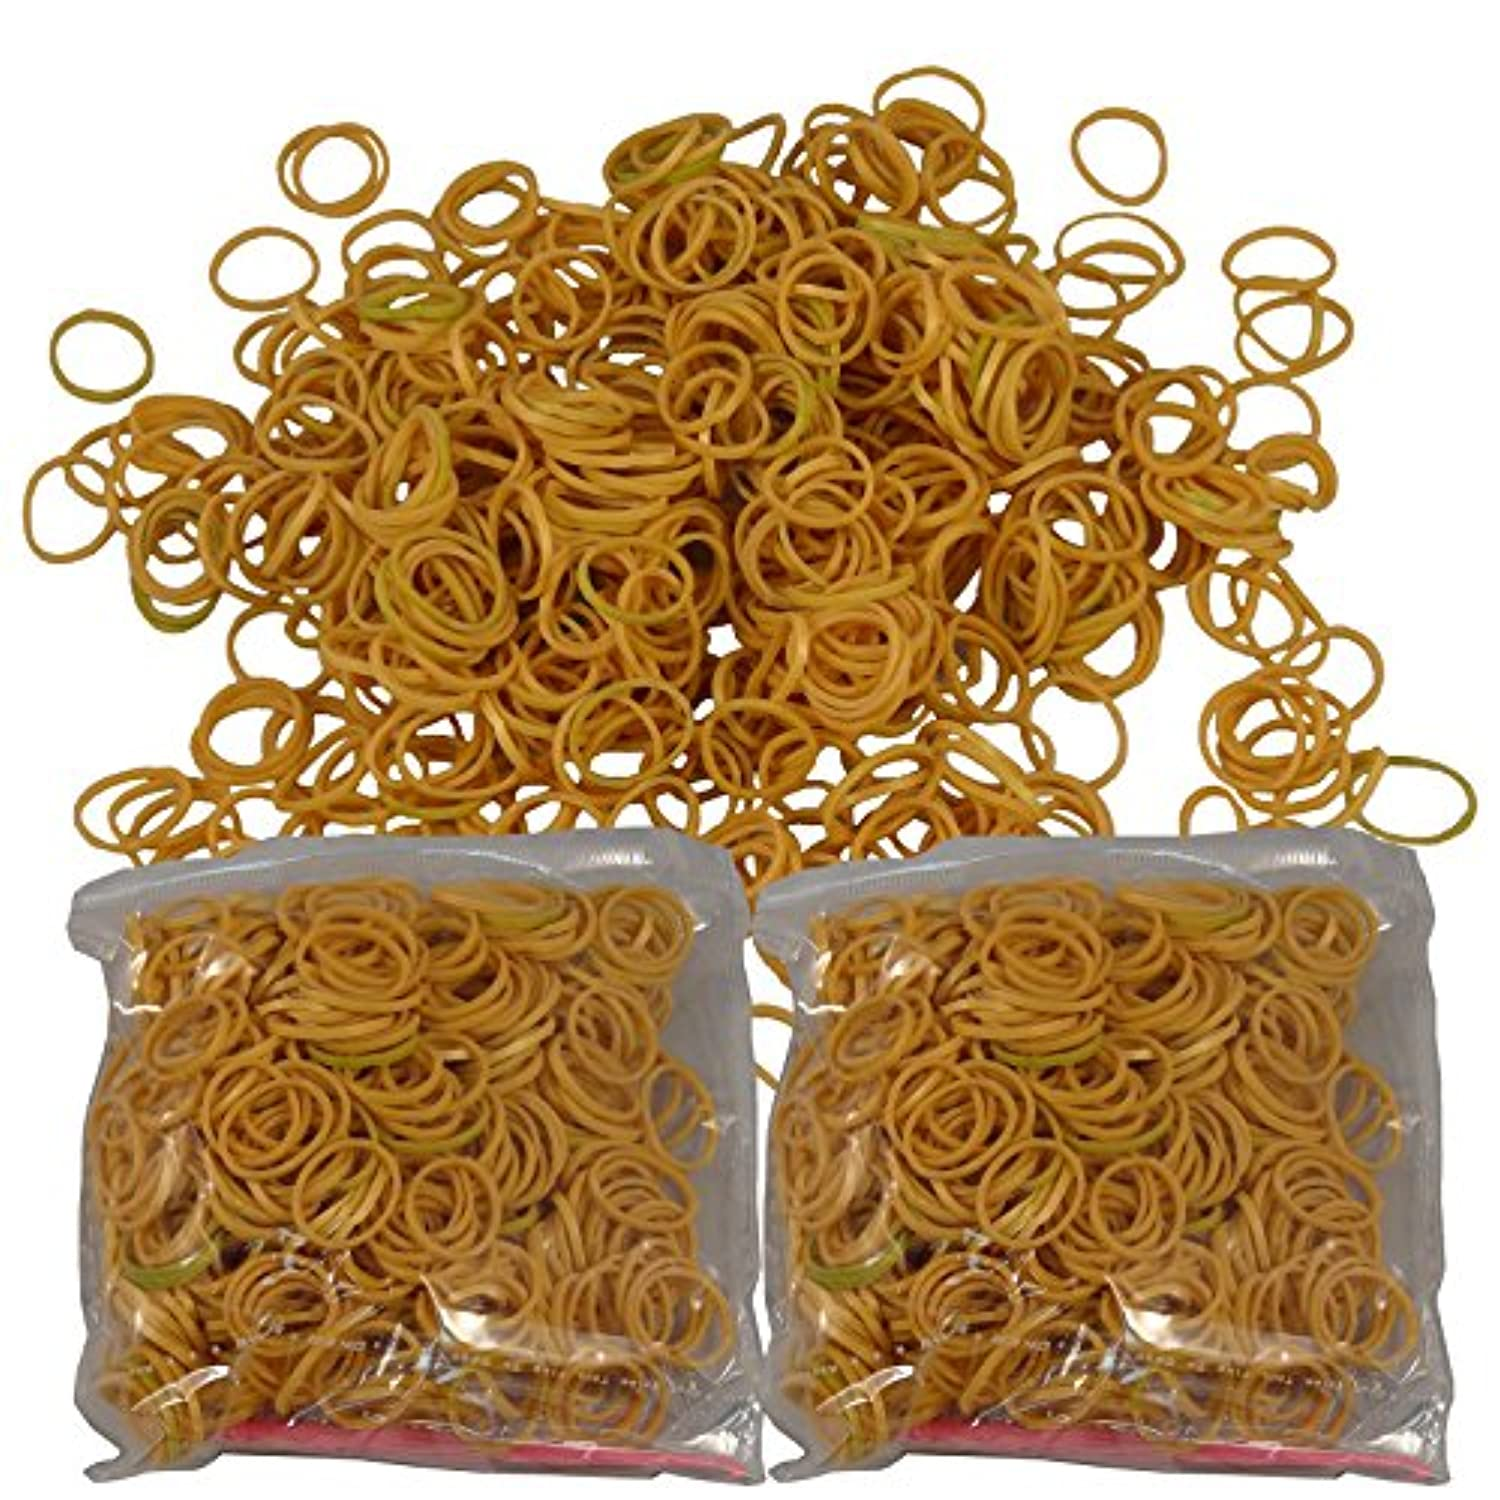 1200 Piece Gold Rubber Band and S-Clips Loom Art and Craft Kids Rainbow Bracelet Refill Pack by Bluedot Trading